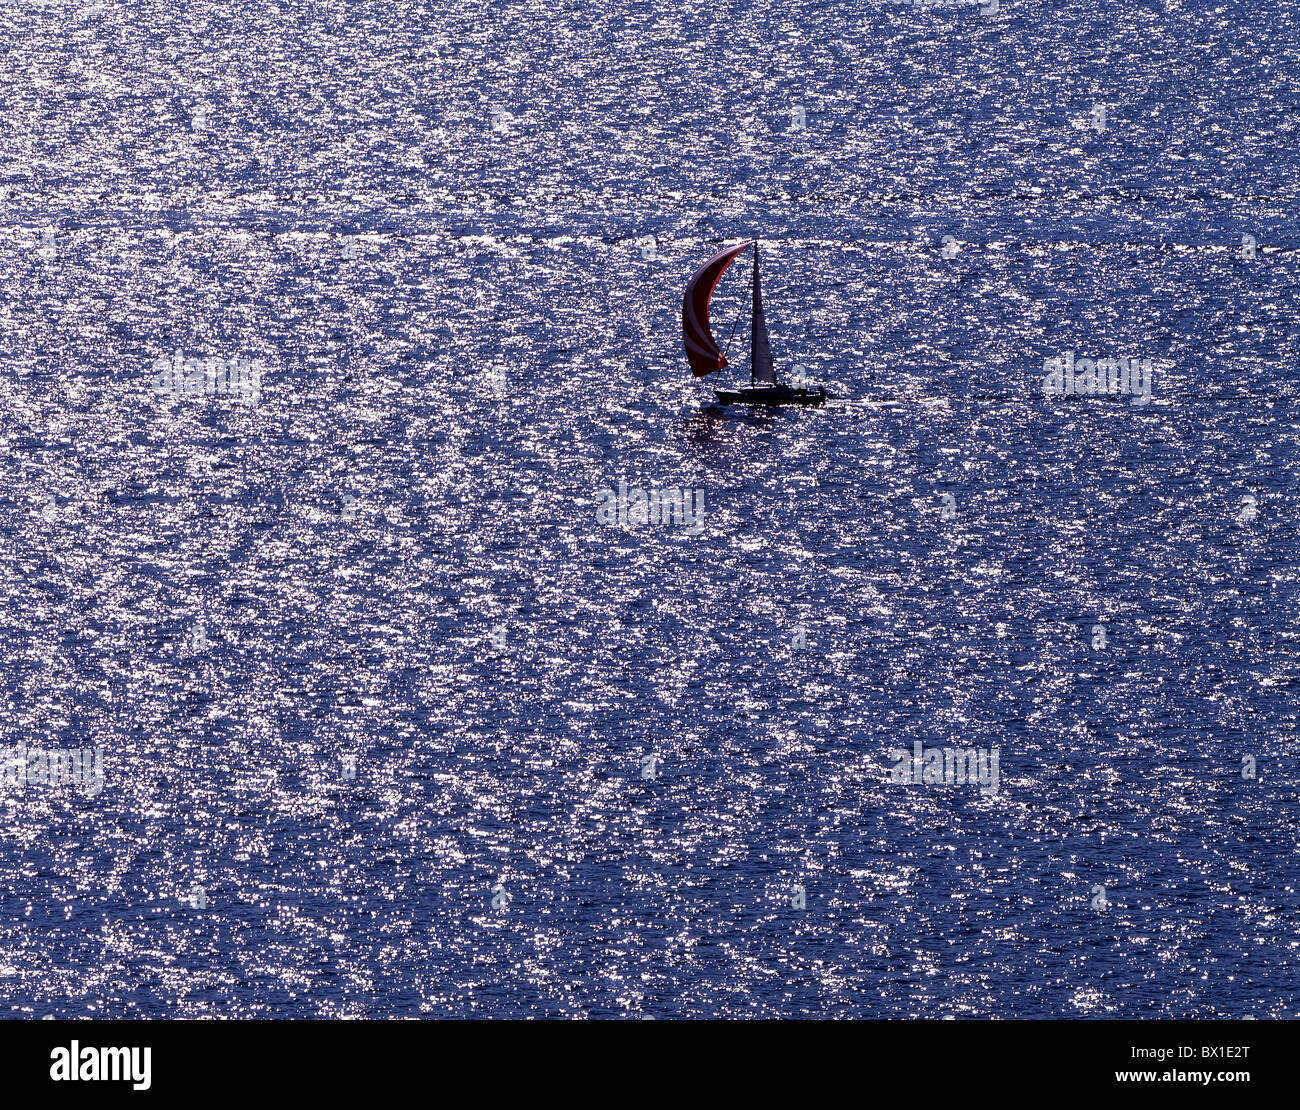 Sail boat lake to shining Boat sails spare time - Stock Image